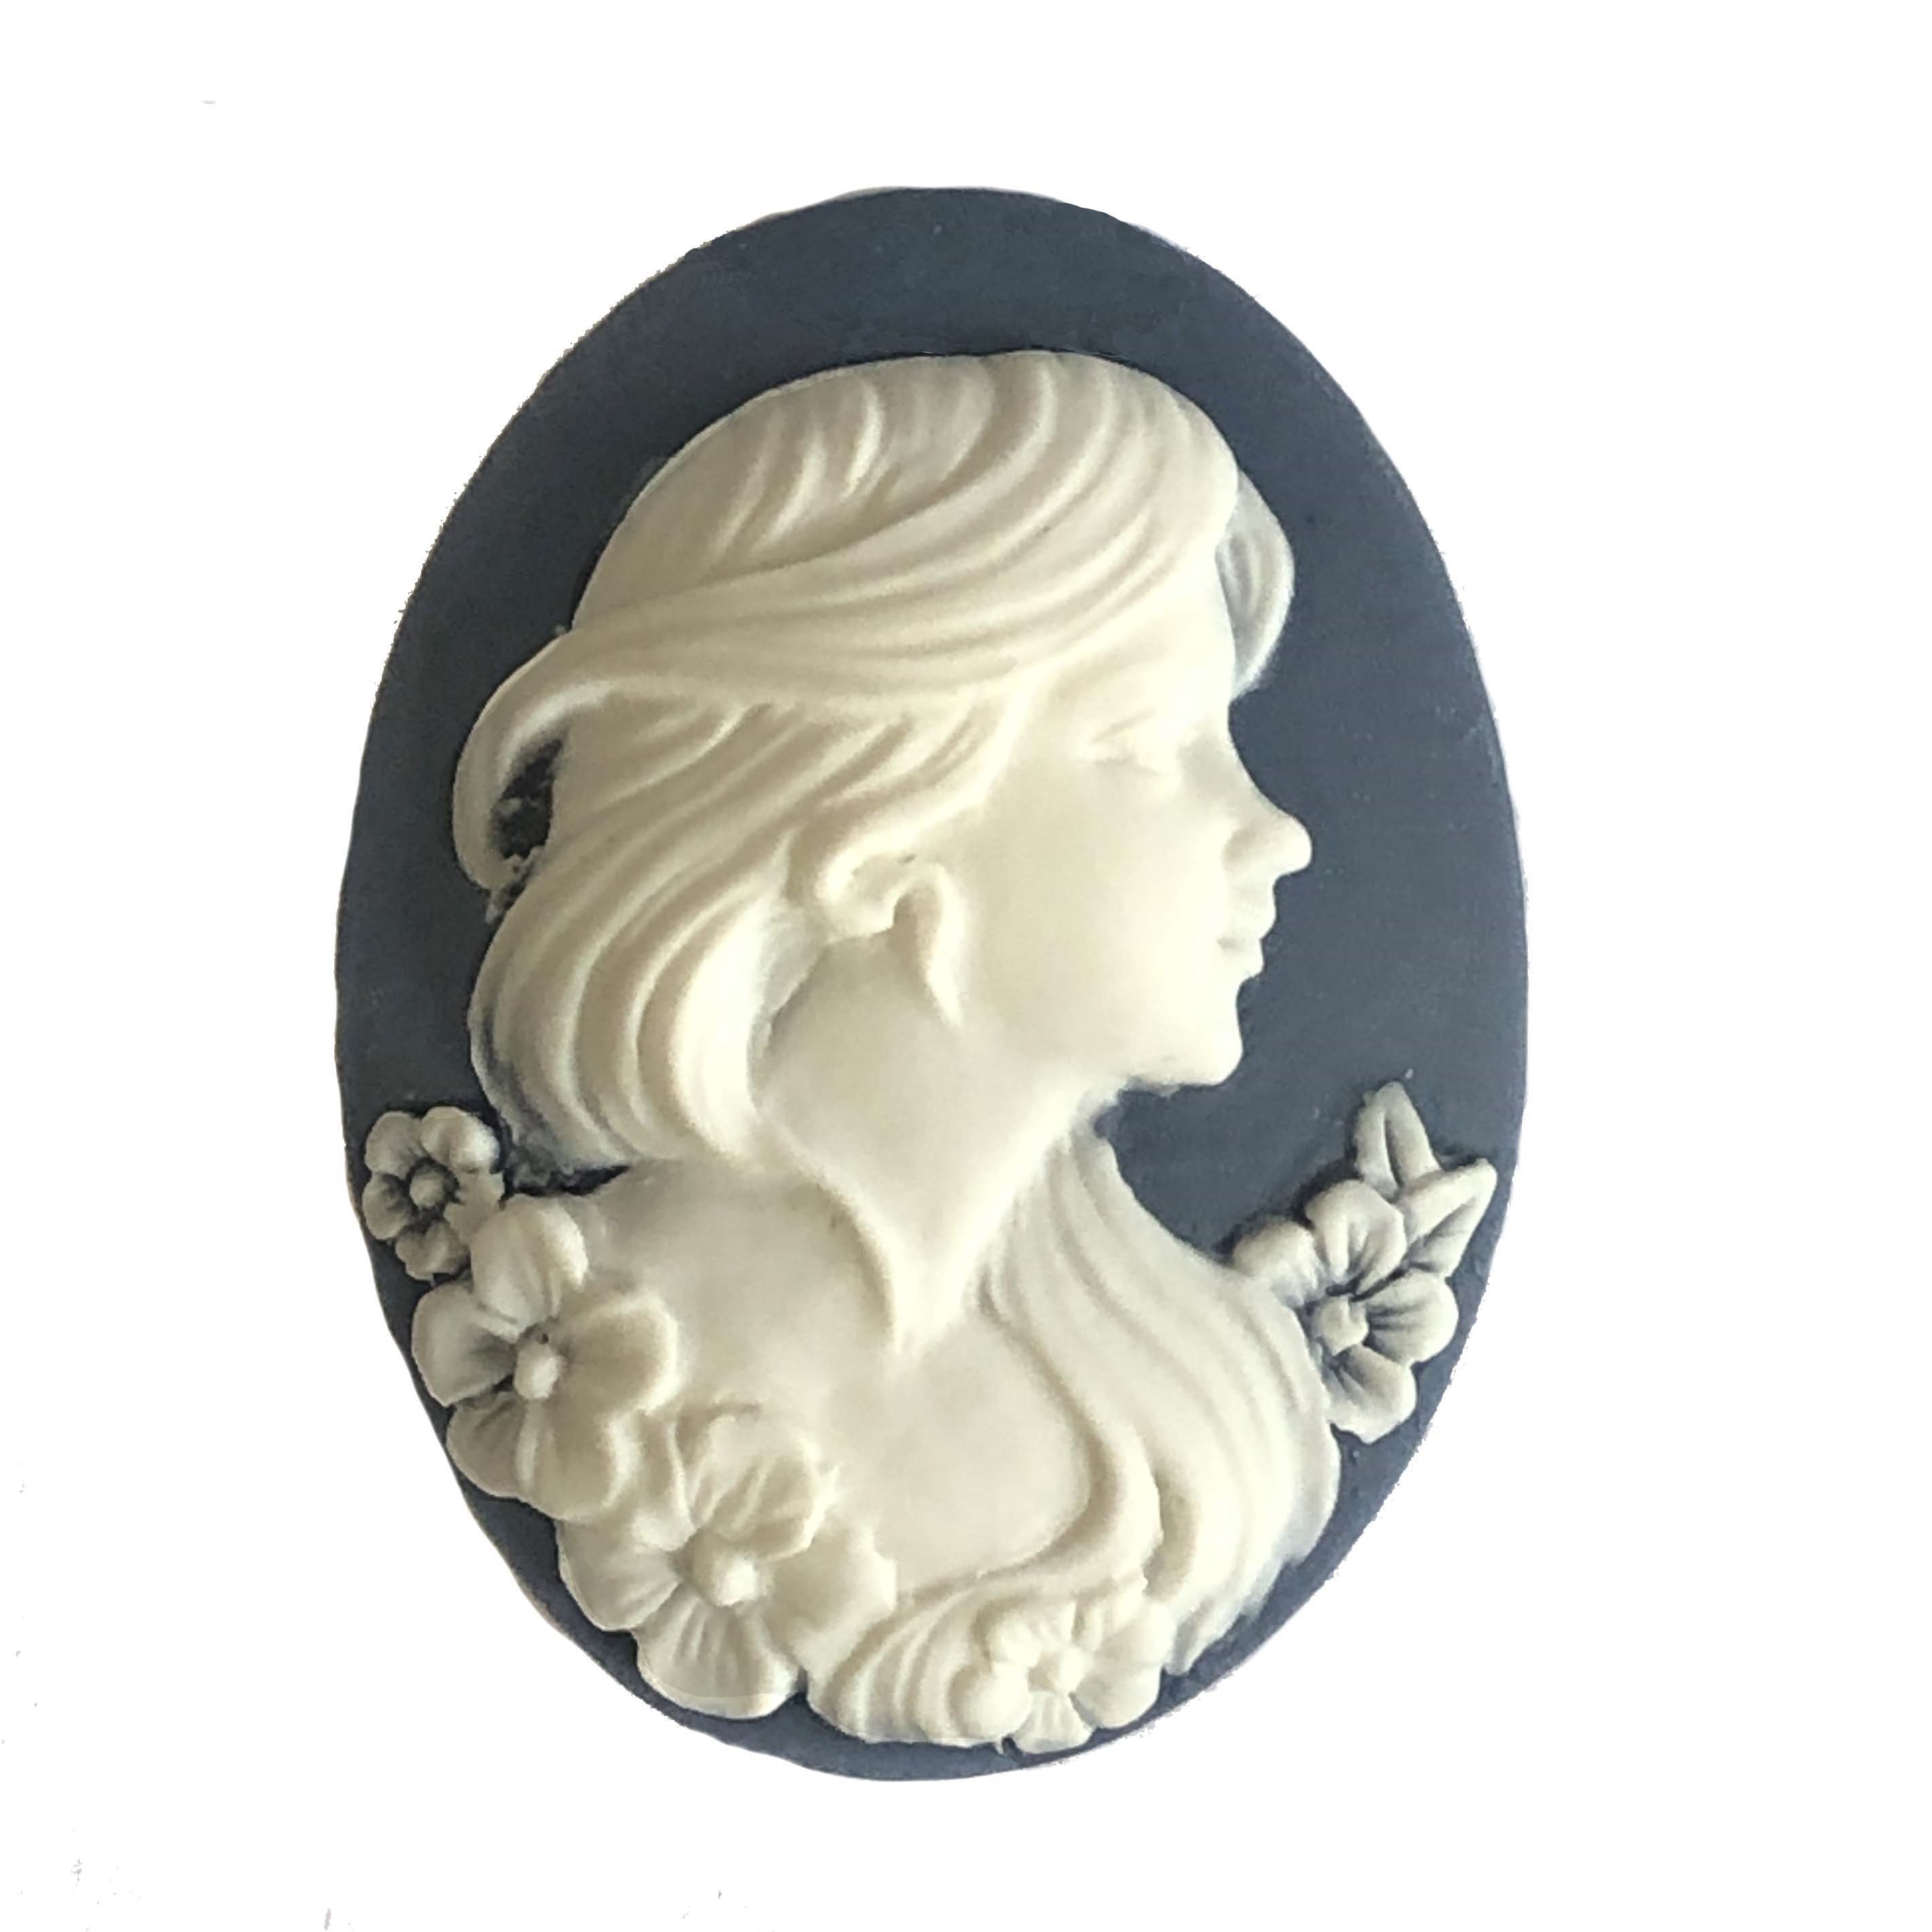 Cameo, Lady, Floral Accents, White, Navy, 40 x 30mm